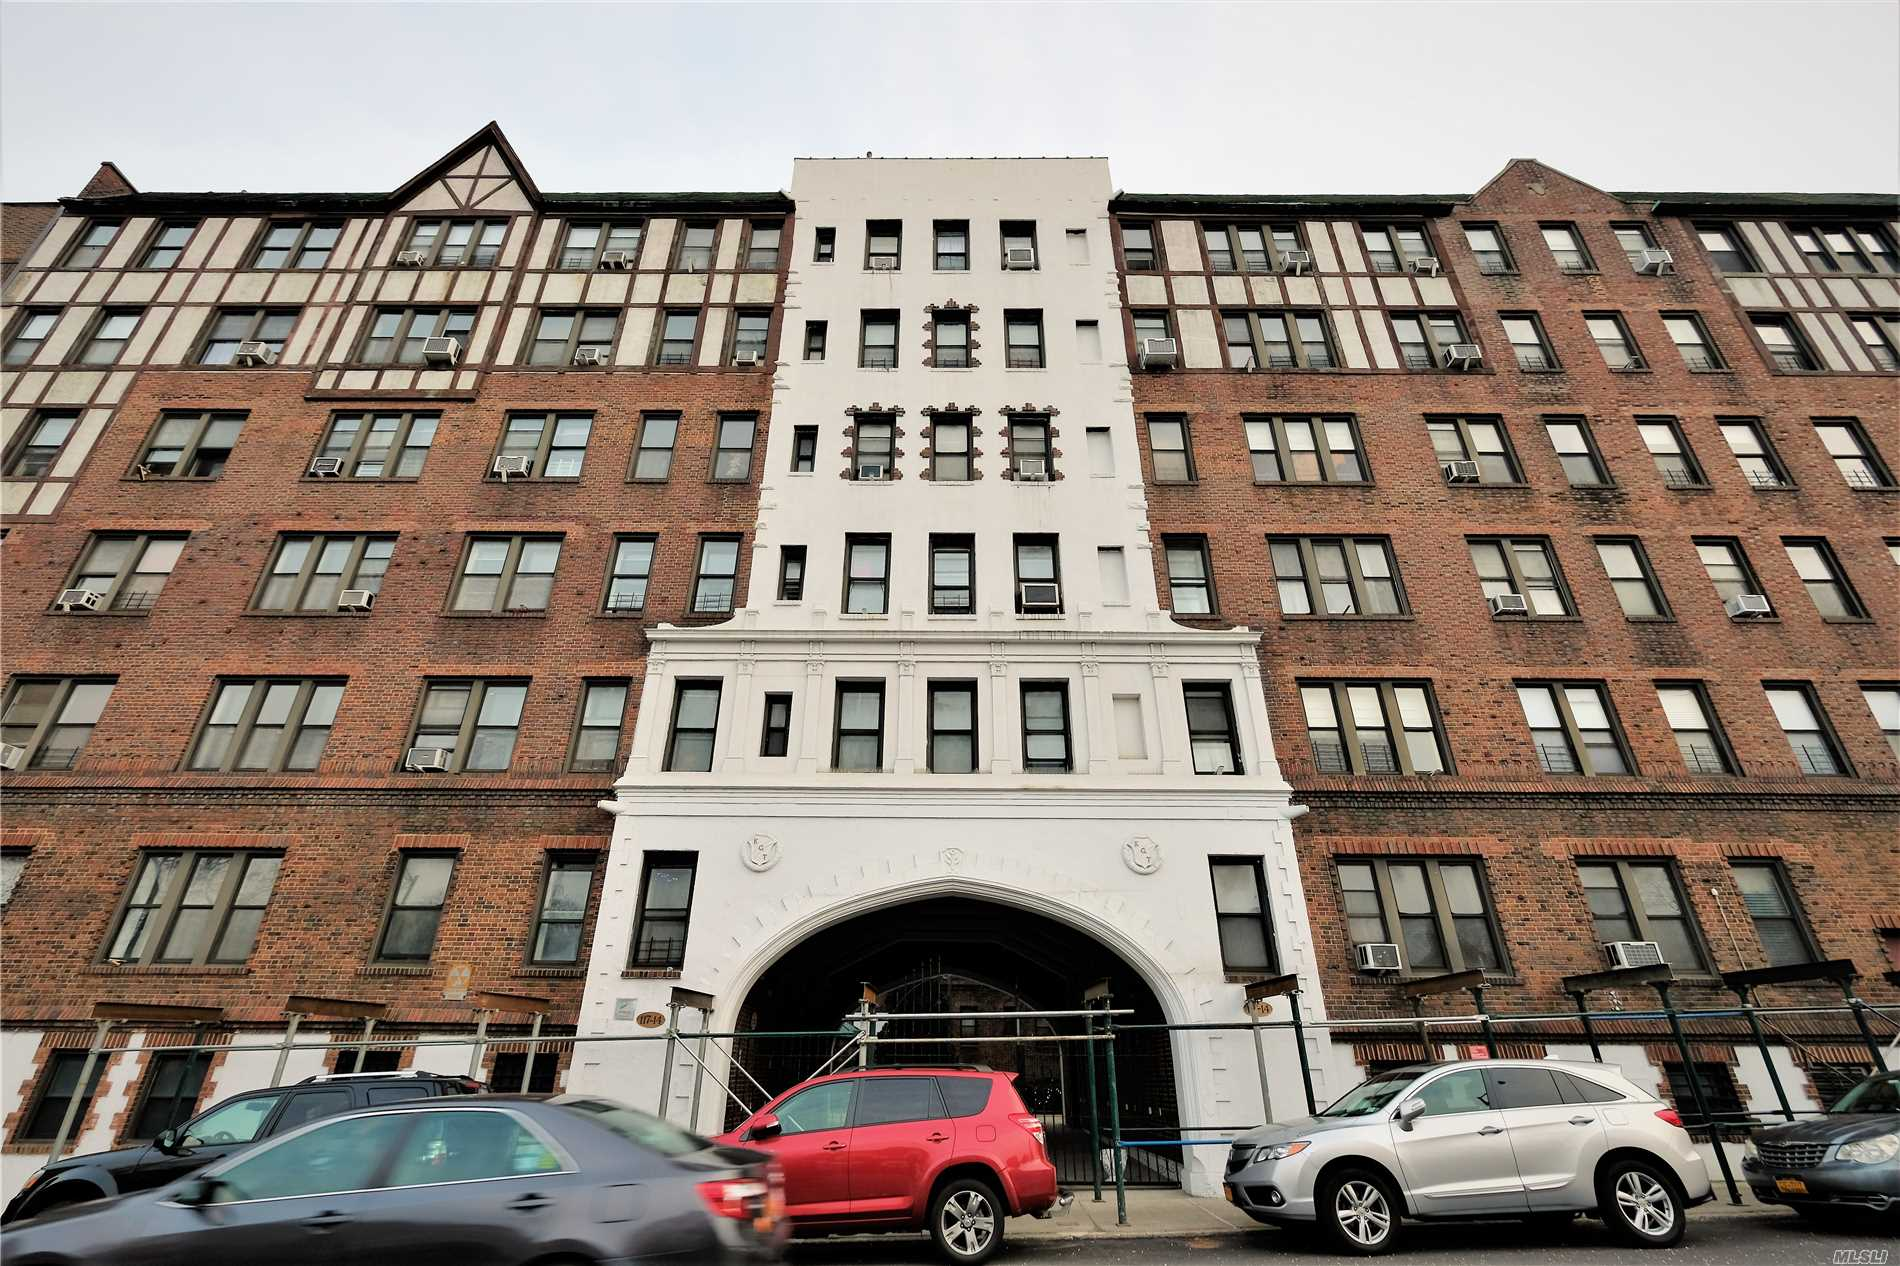 Pre War Oversize 1 Bedroom Jr4 With An Office/Den Next To The Kitchen. High 9 Ft Ceiling, Windows In Every Room. Hardwood Floors. Charming Old World Fixtures With Original Closets. Pet Friendly 2 Blocks To Express E/F Subway Station. 5 Blocks To Lirr Station. Maintenance Includes Assessment Of $140 Per Month For Capital Improvement Until Approximately November Of 2020.